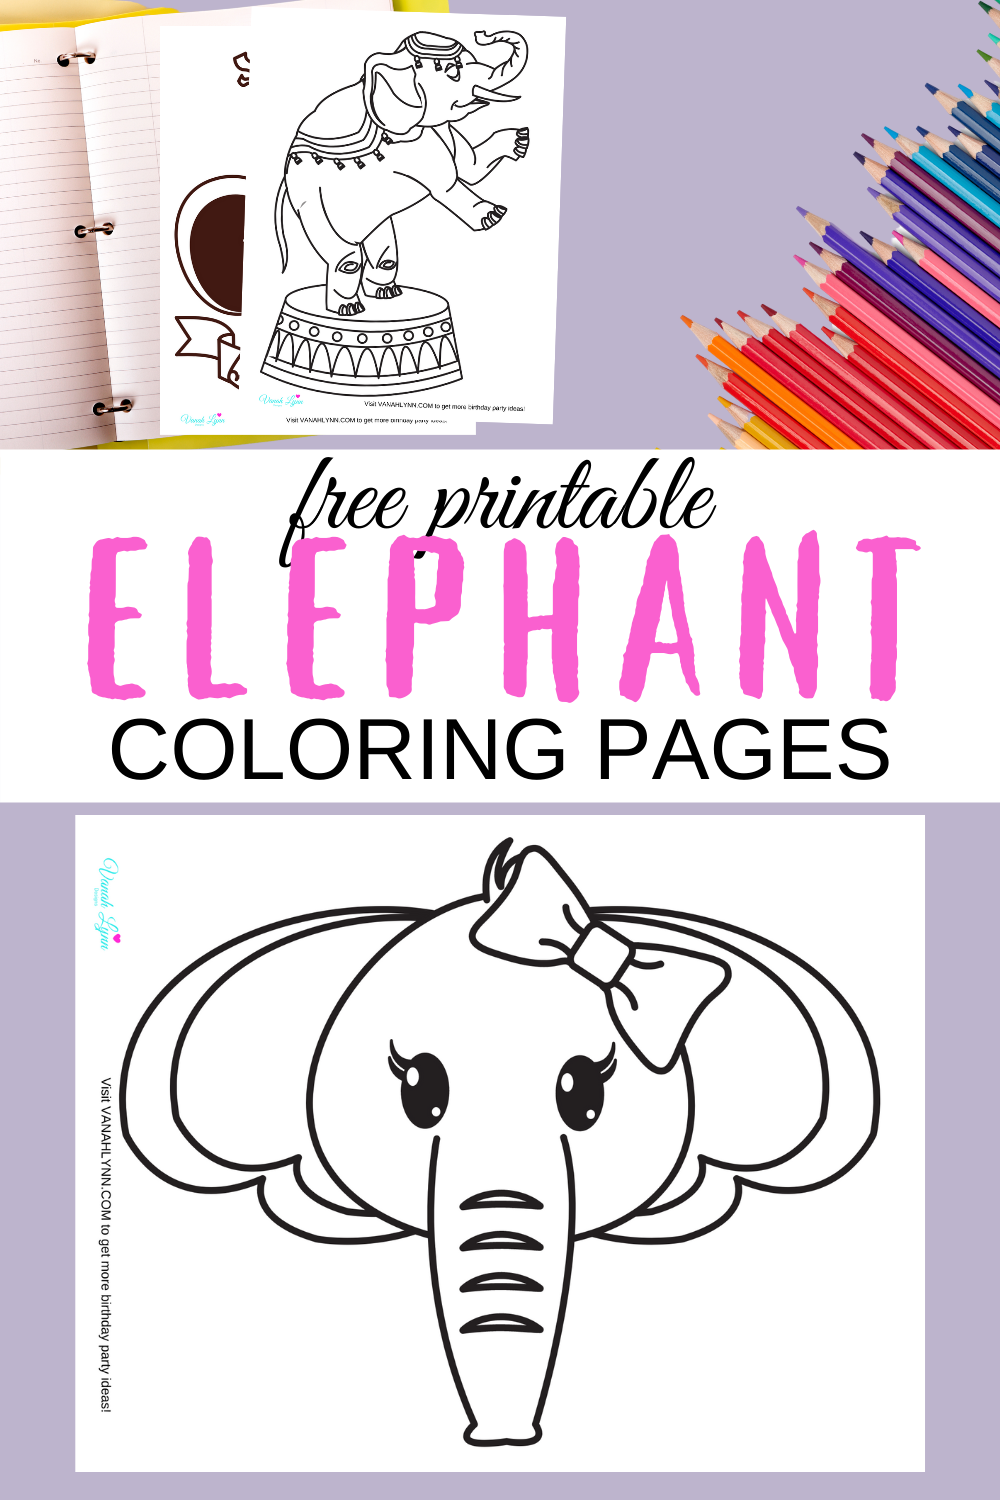 free printable elephant coloring sheets for a small child